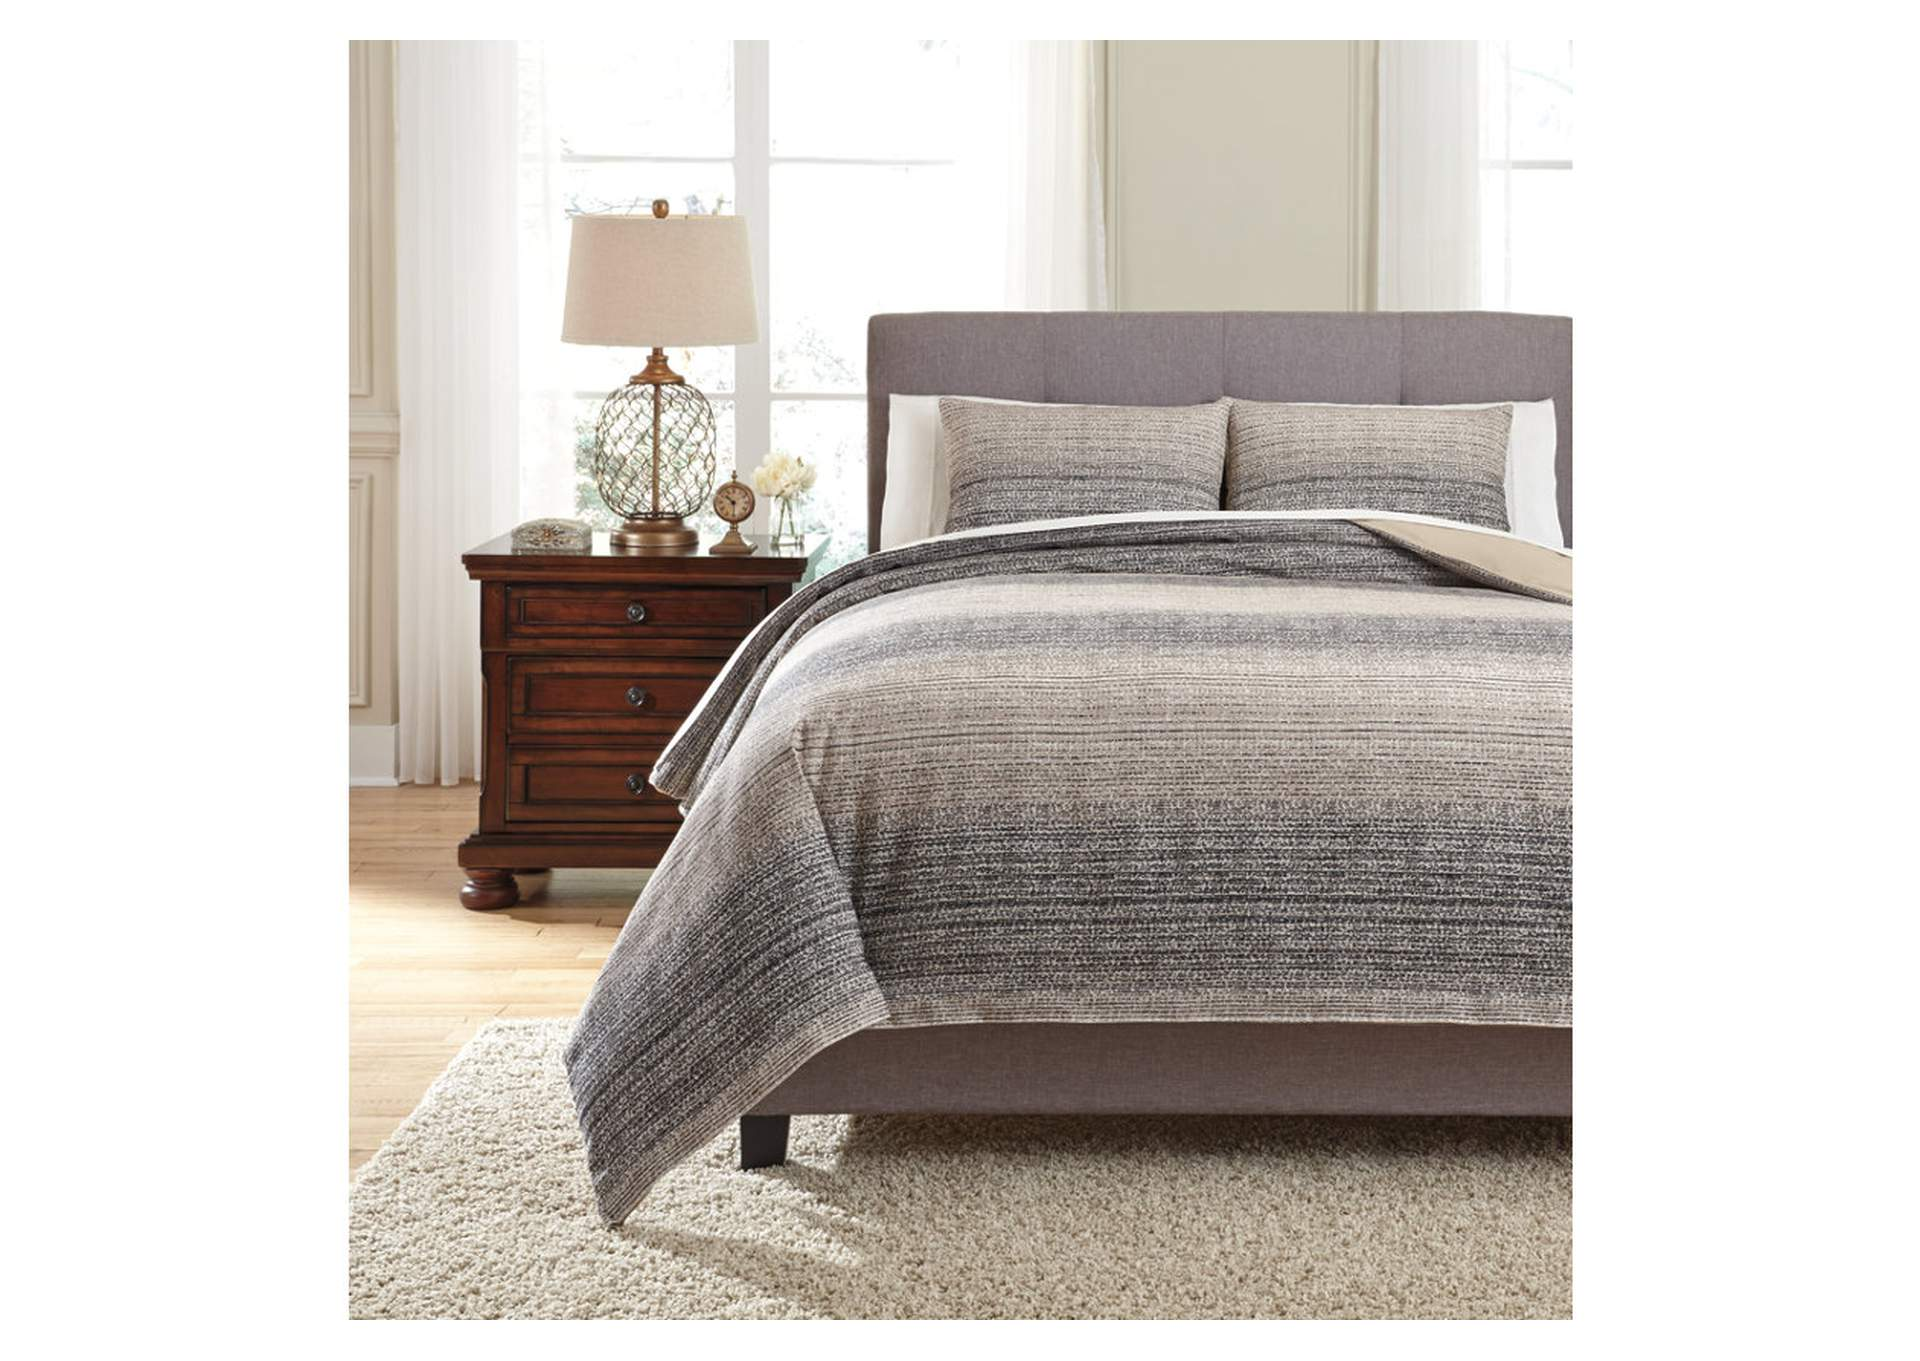 Arturo Natural/Charcoal King Duvet Cover Set,Signature Design By Ashley